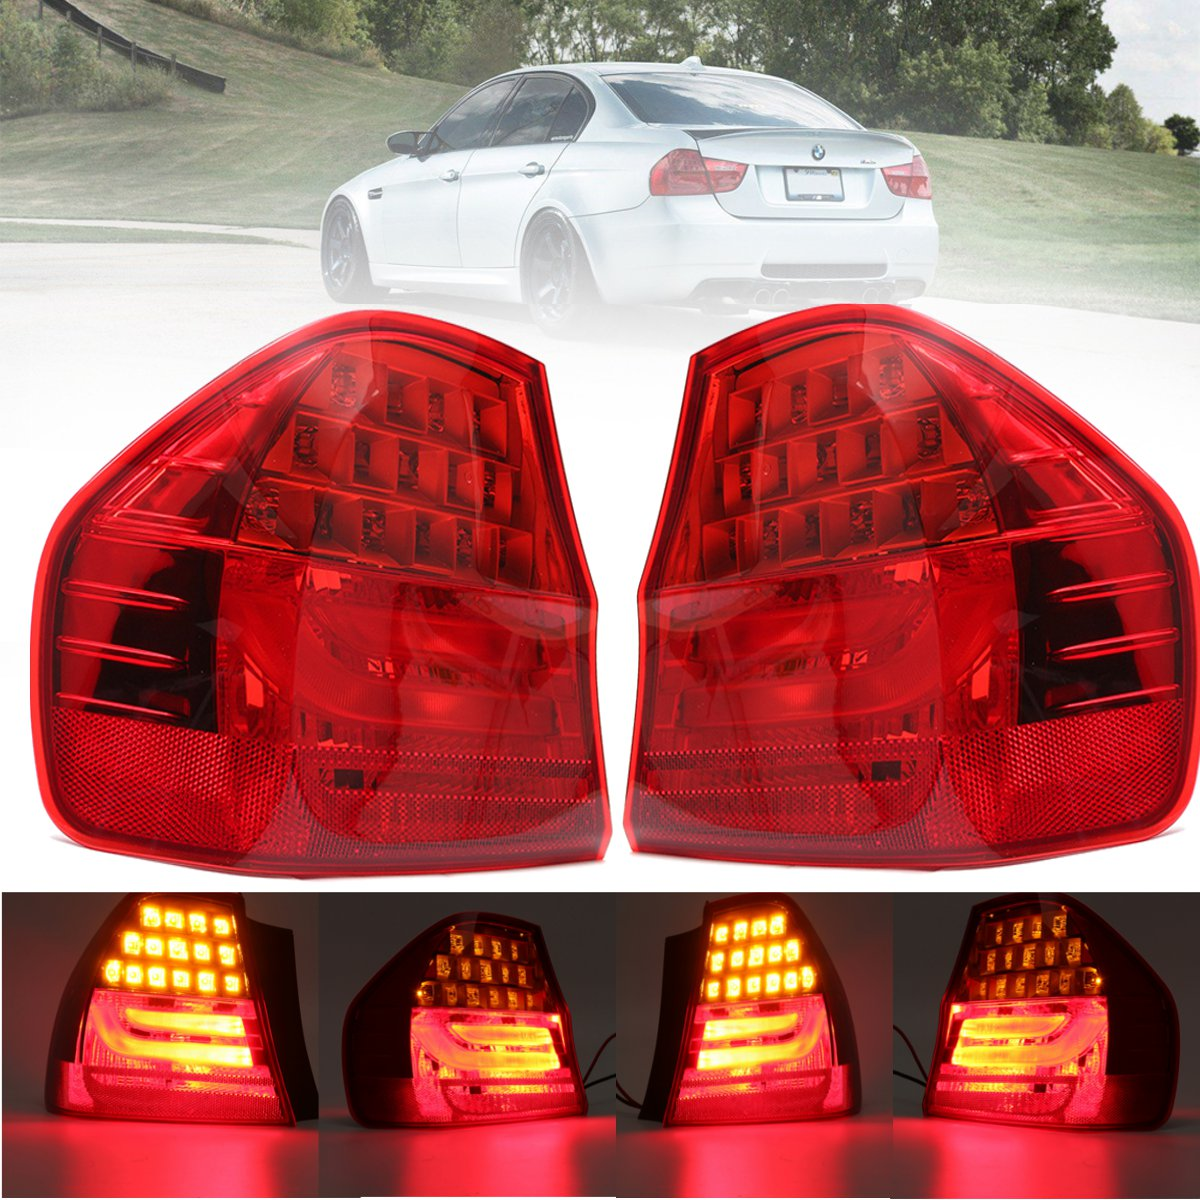 1Pcs Car Rear Tail Lamp Light Led Light Left / Right Side For BMW 3 SERIES E90 2008 2009 2010 2011 red left right car rear side tail light brake lamp light for toyota hilux 2005 2006 2007 2008 2009 2010 2015 lh rh